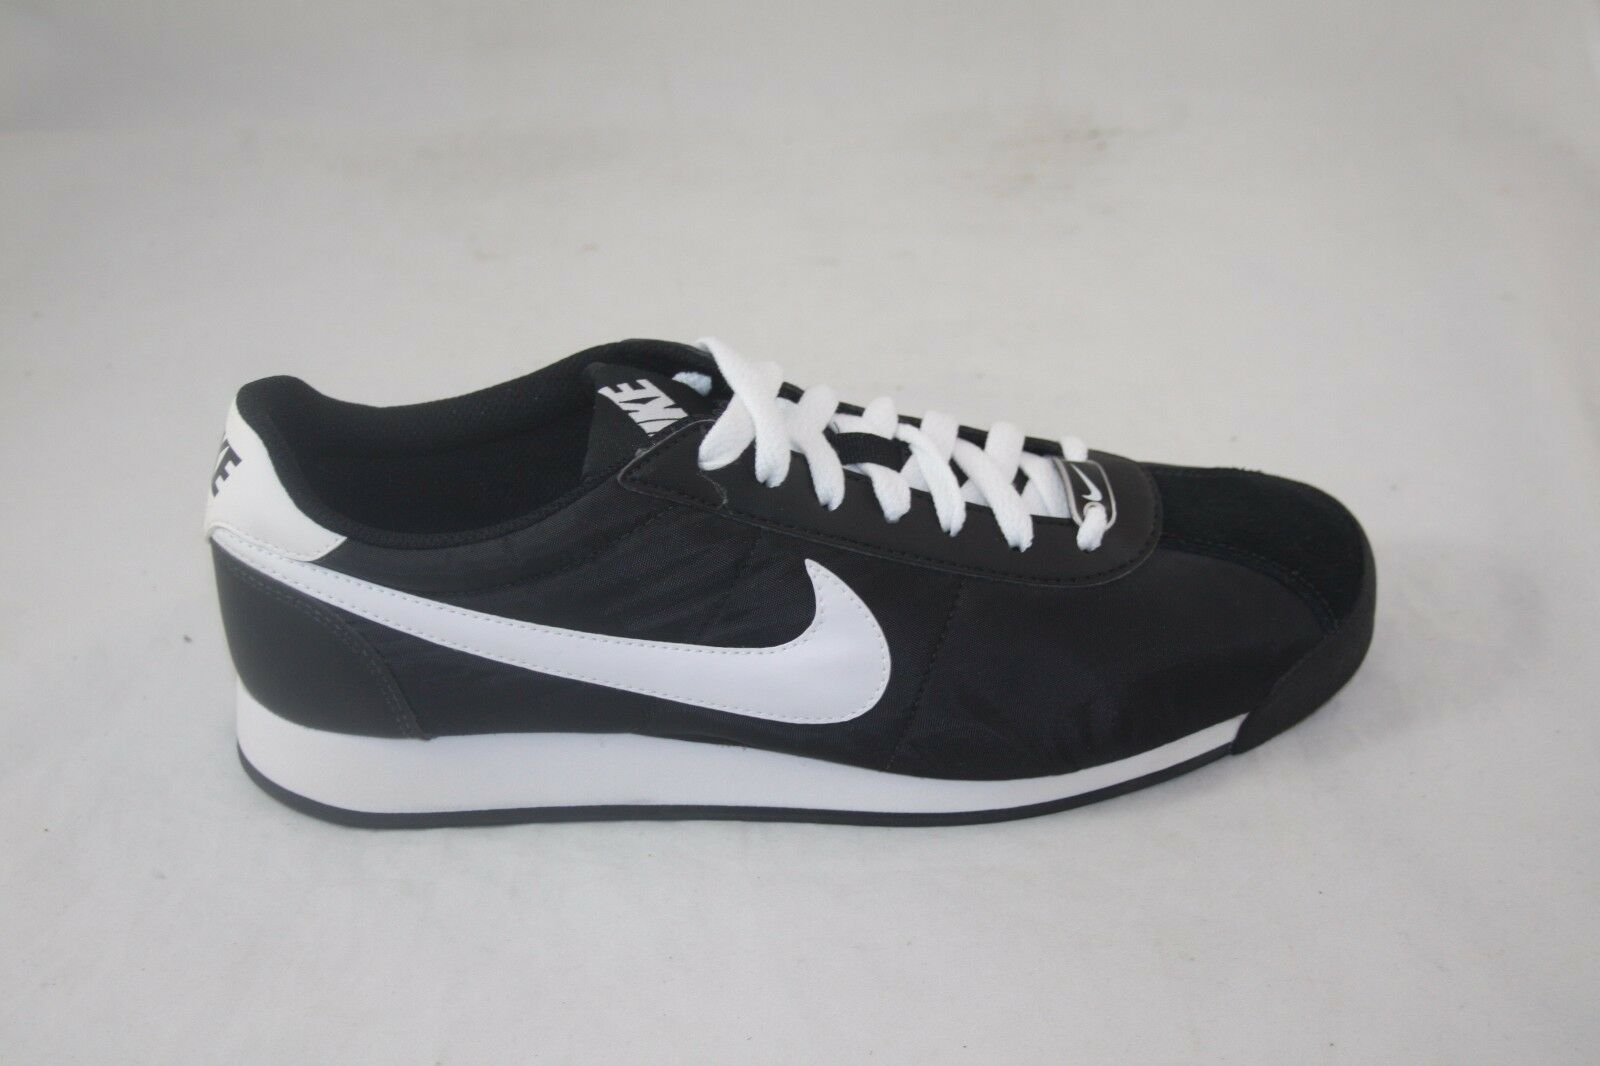 MEN'S NIKE MARQUEE TXT 580536-010 BLACK/WHITE SAIL NYLON LIGHT WEIGHT SNEAKER